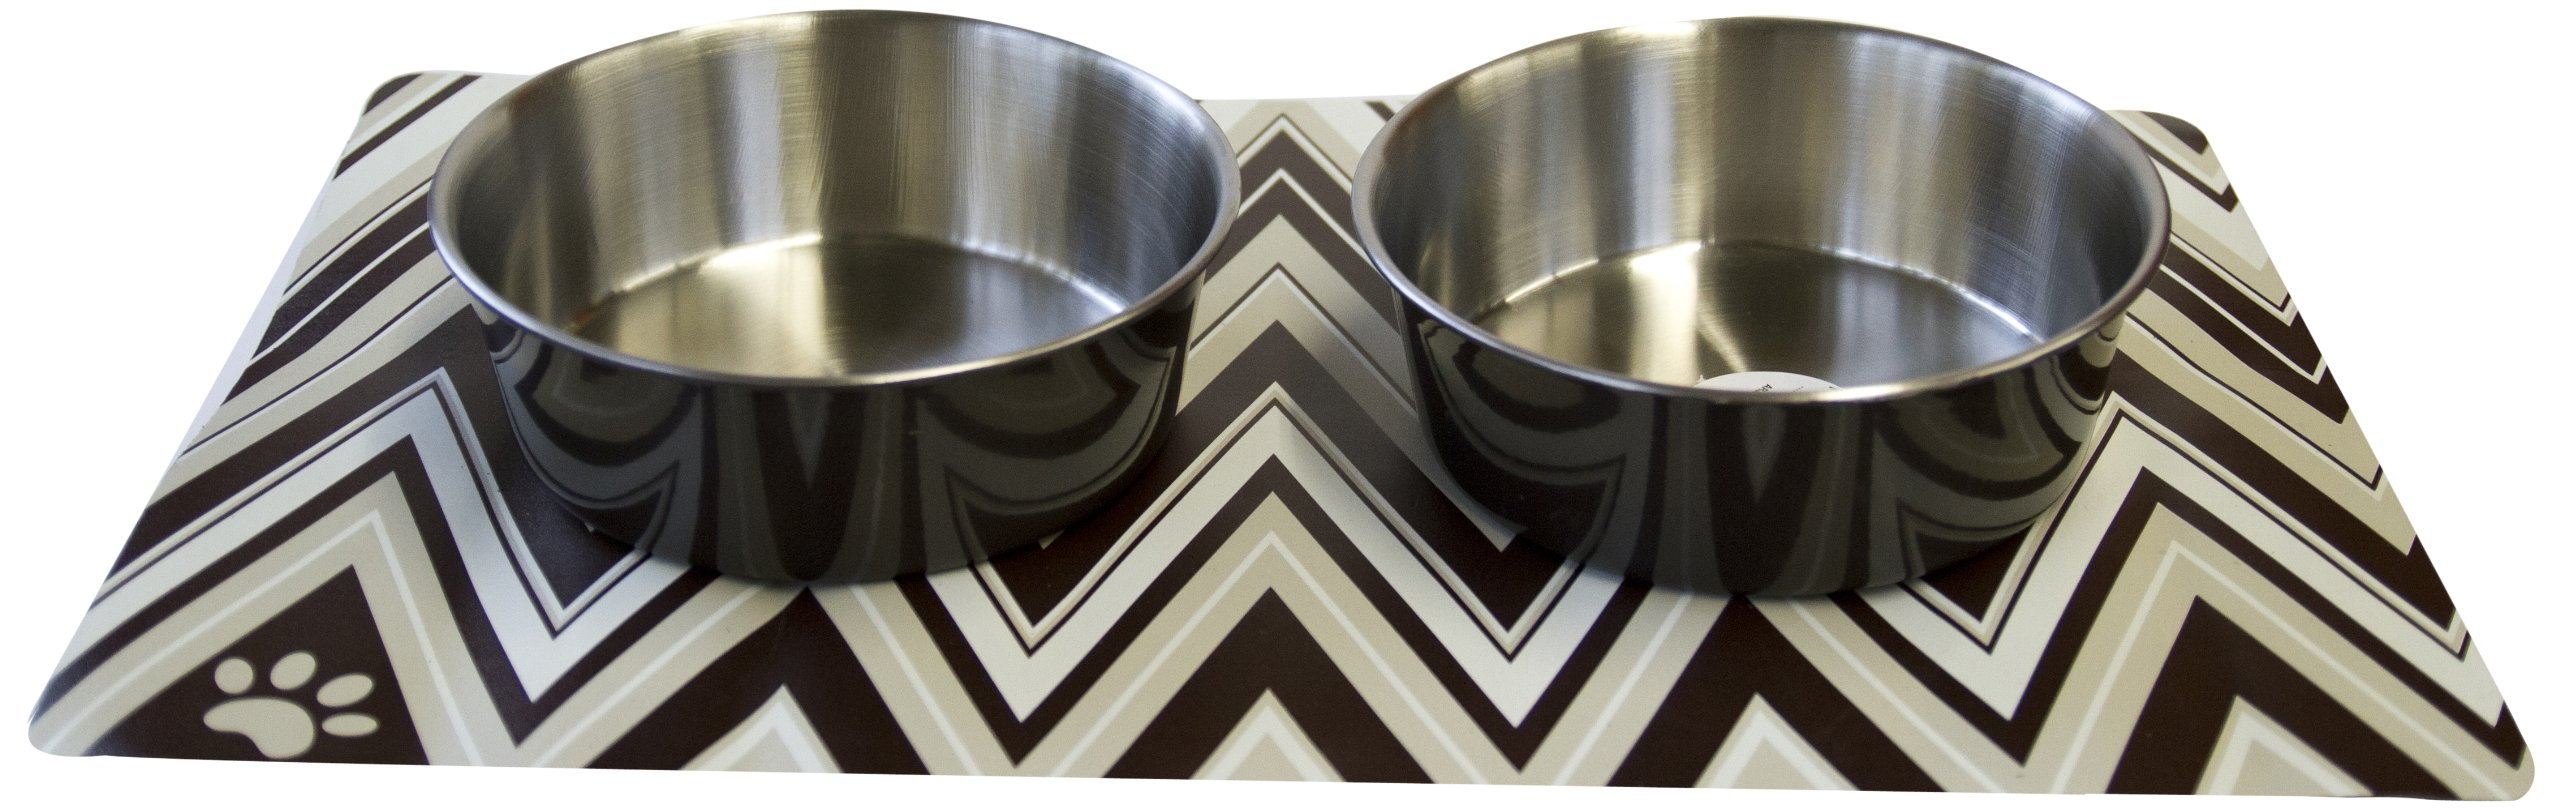 Danazoo Golden Waves Stay-On Mat with Stainless Steel Bowl